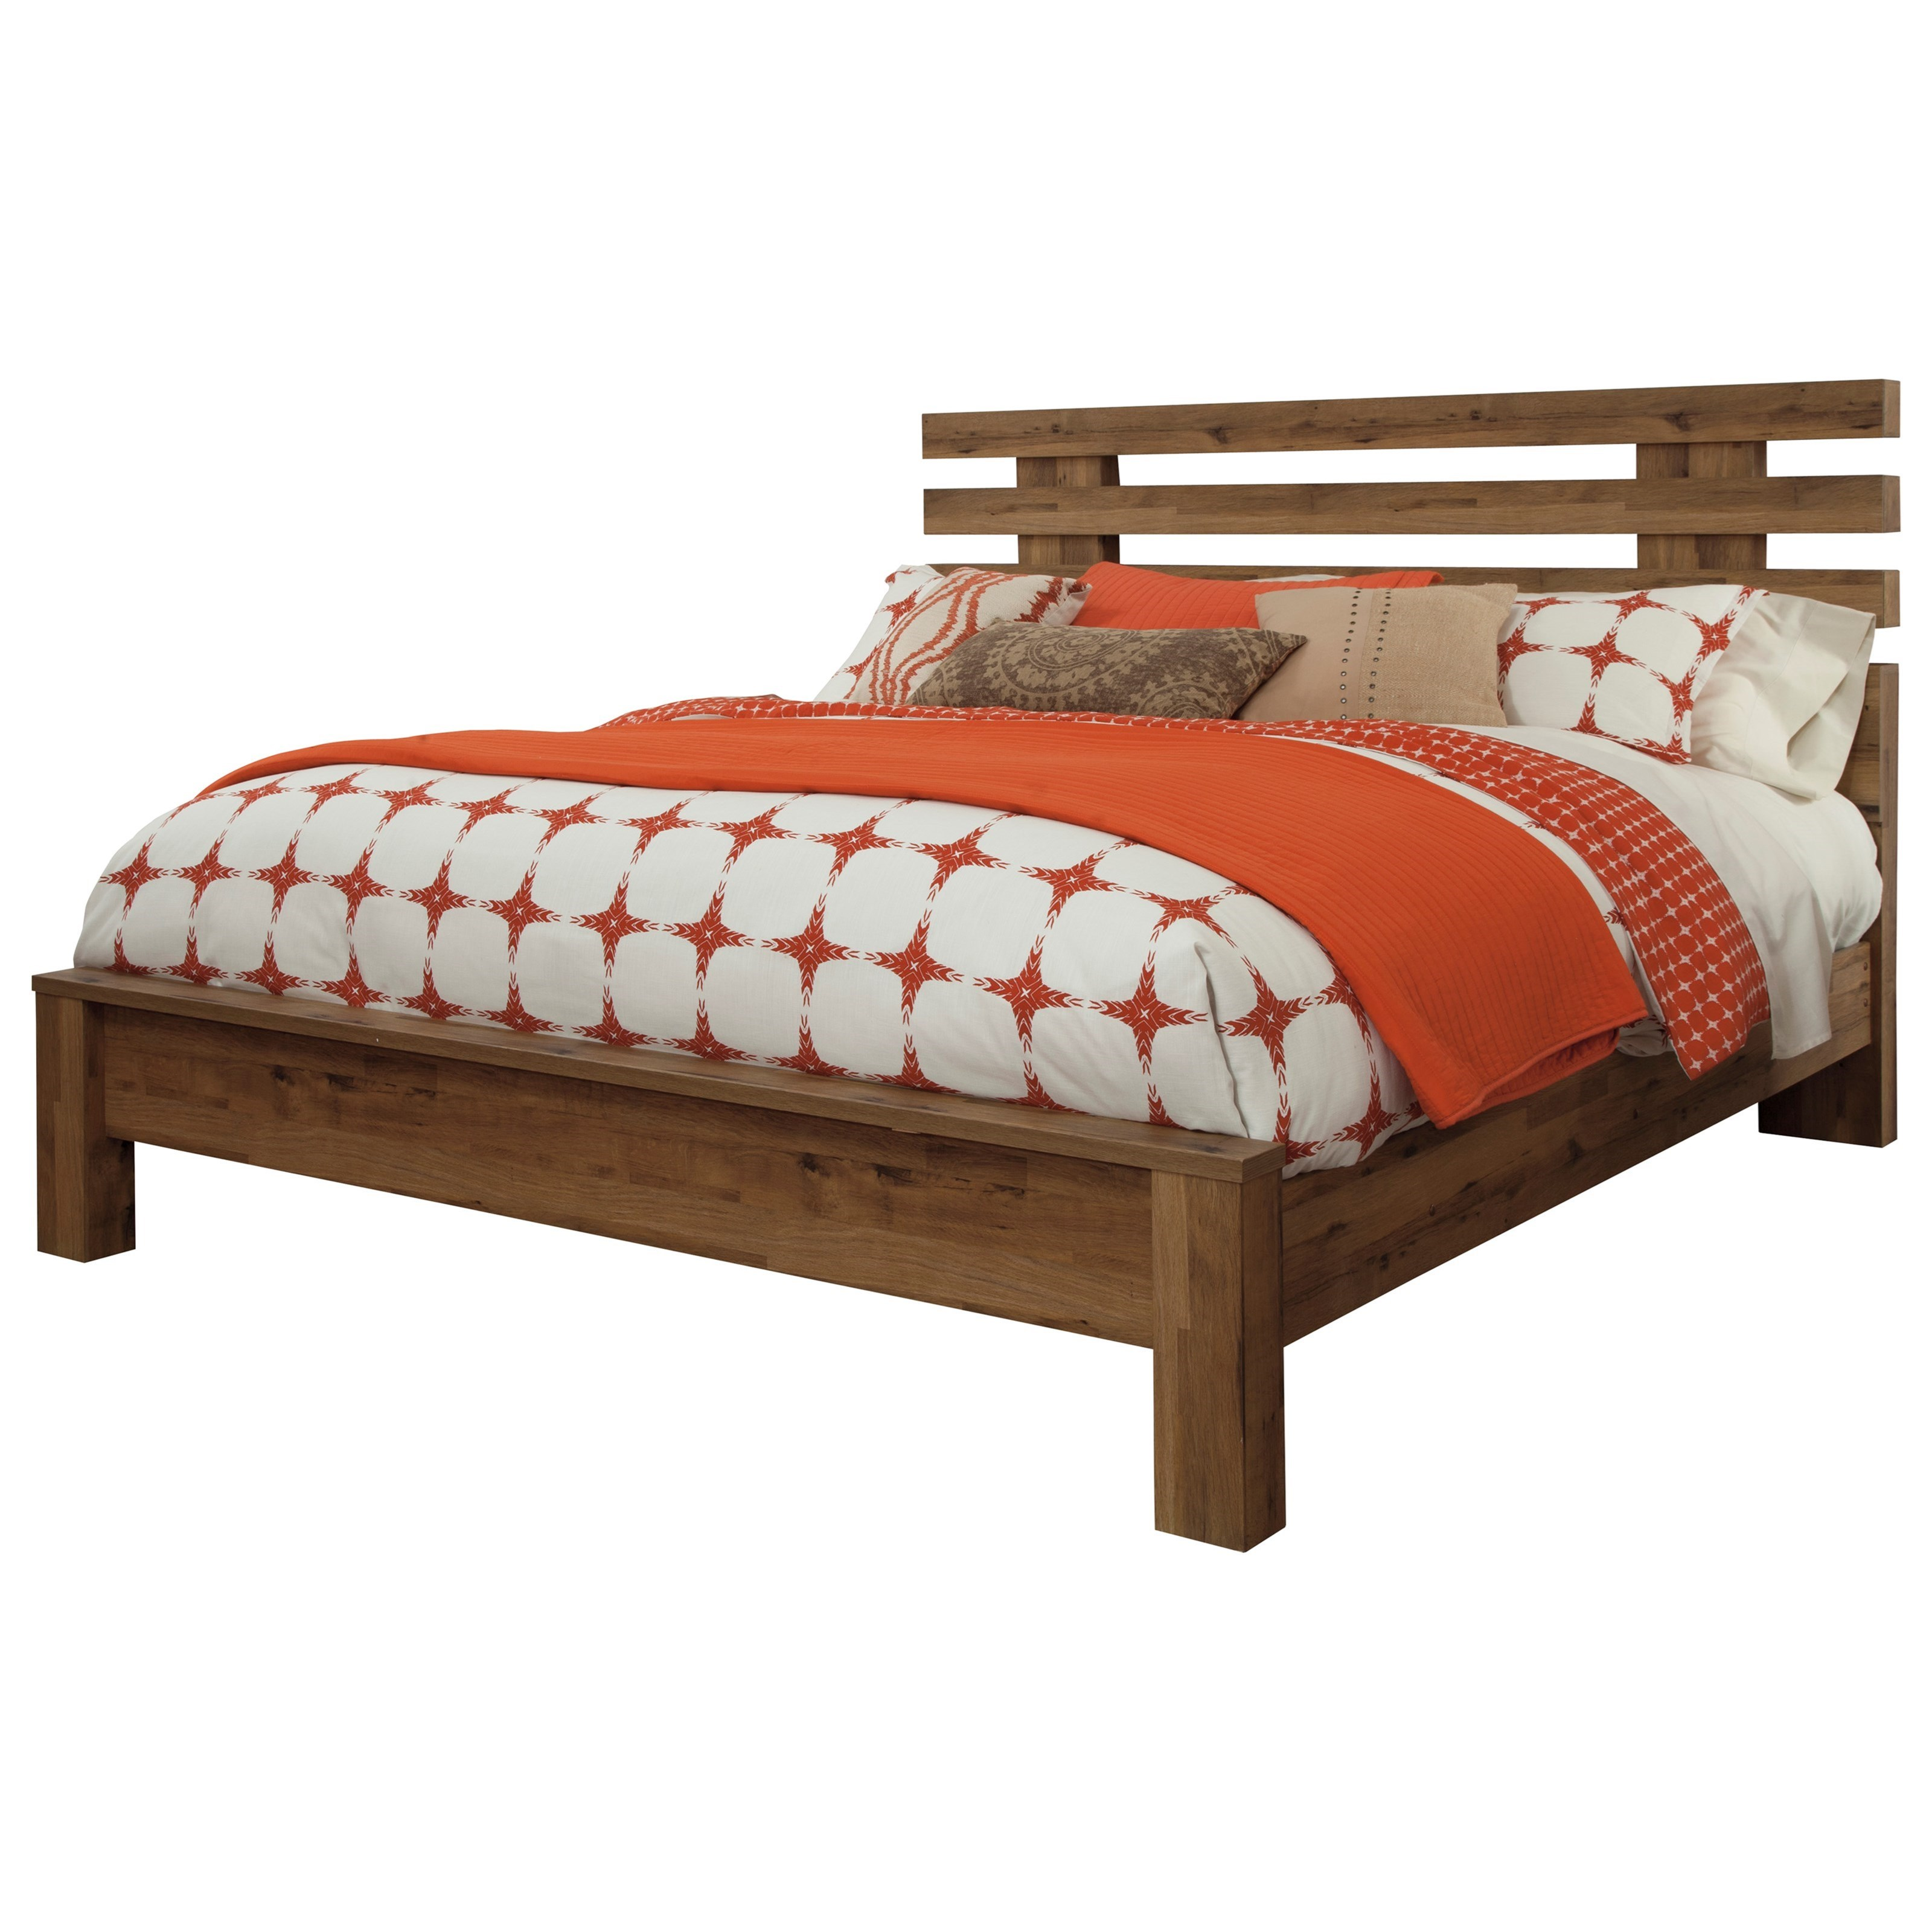 Signature Design by Ashley Simon King Panel Bed - Item Number: B369-58+56+97